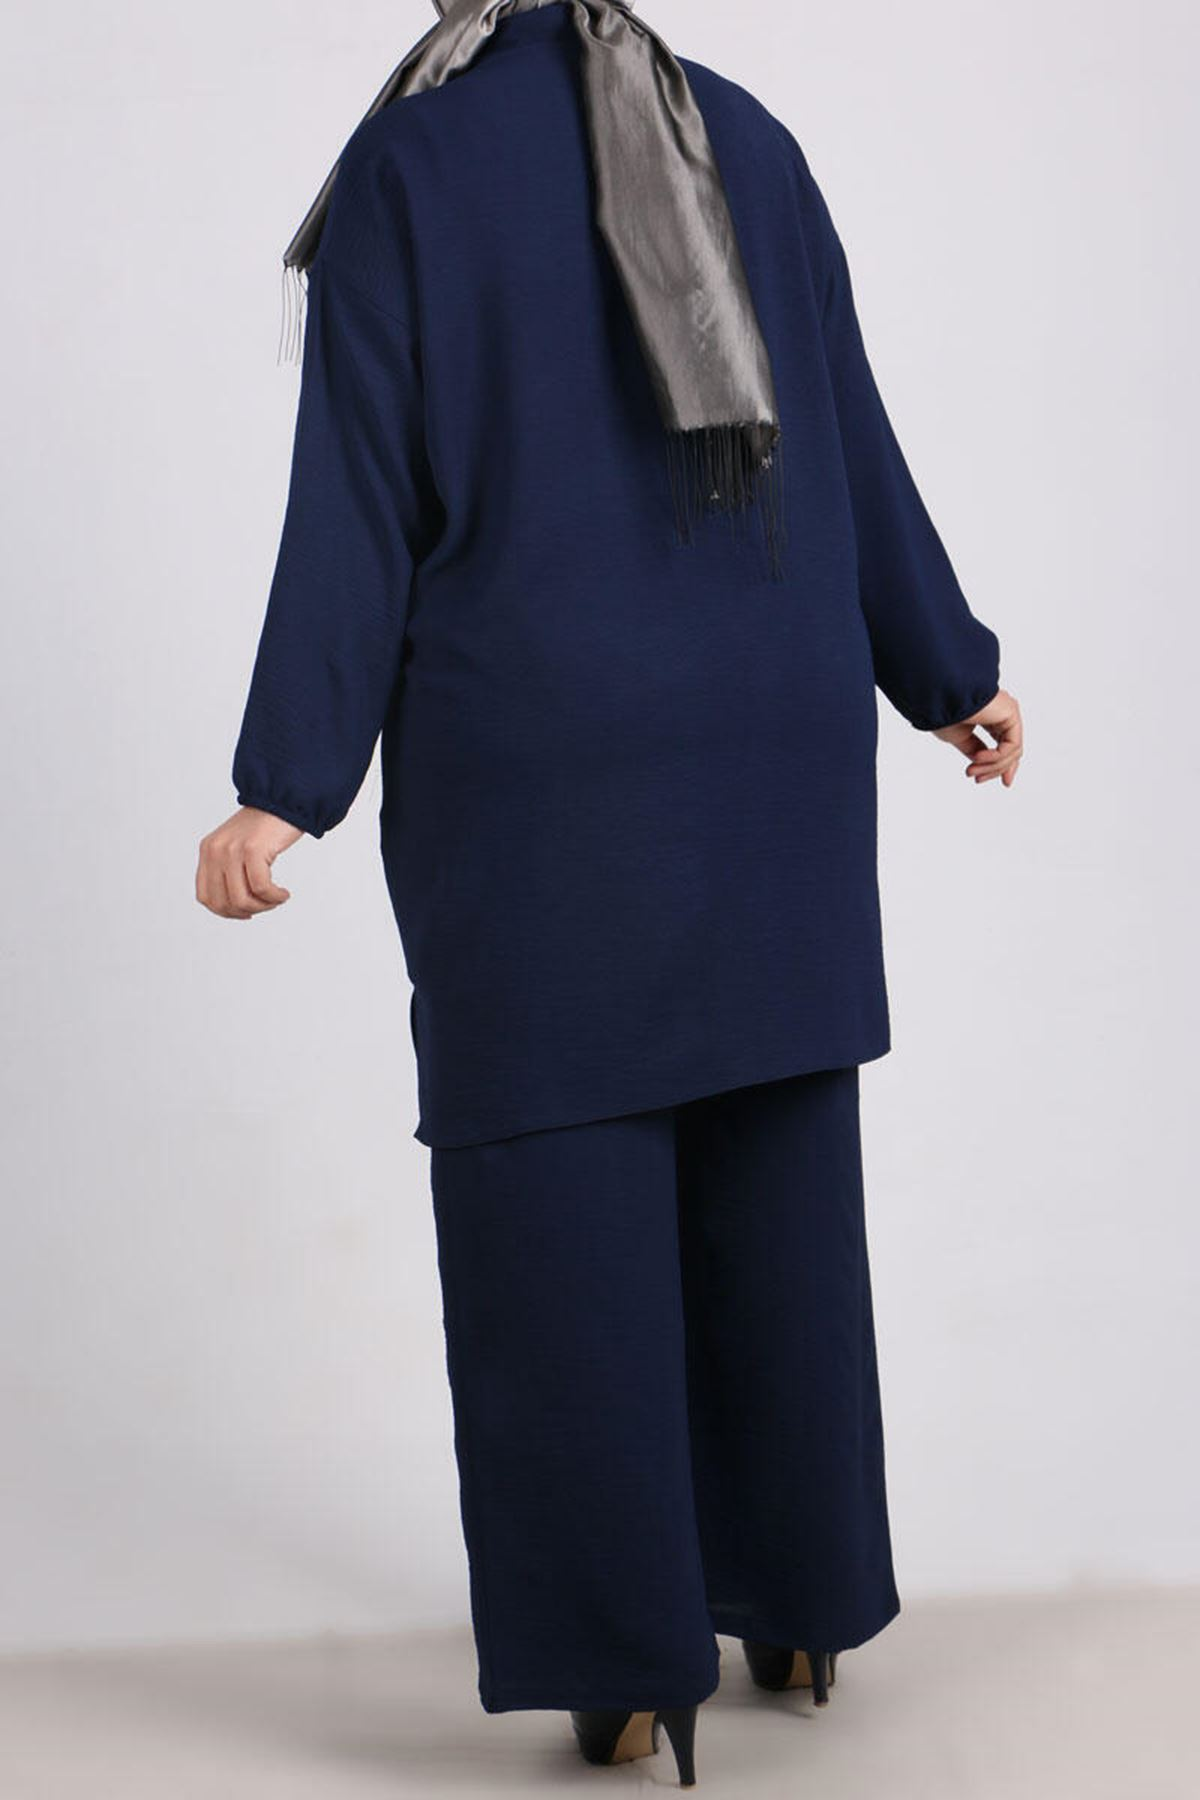 7682 Plus Size Hidden Buttoned Two Piece Set with Pants-Navy Blue